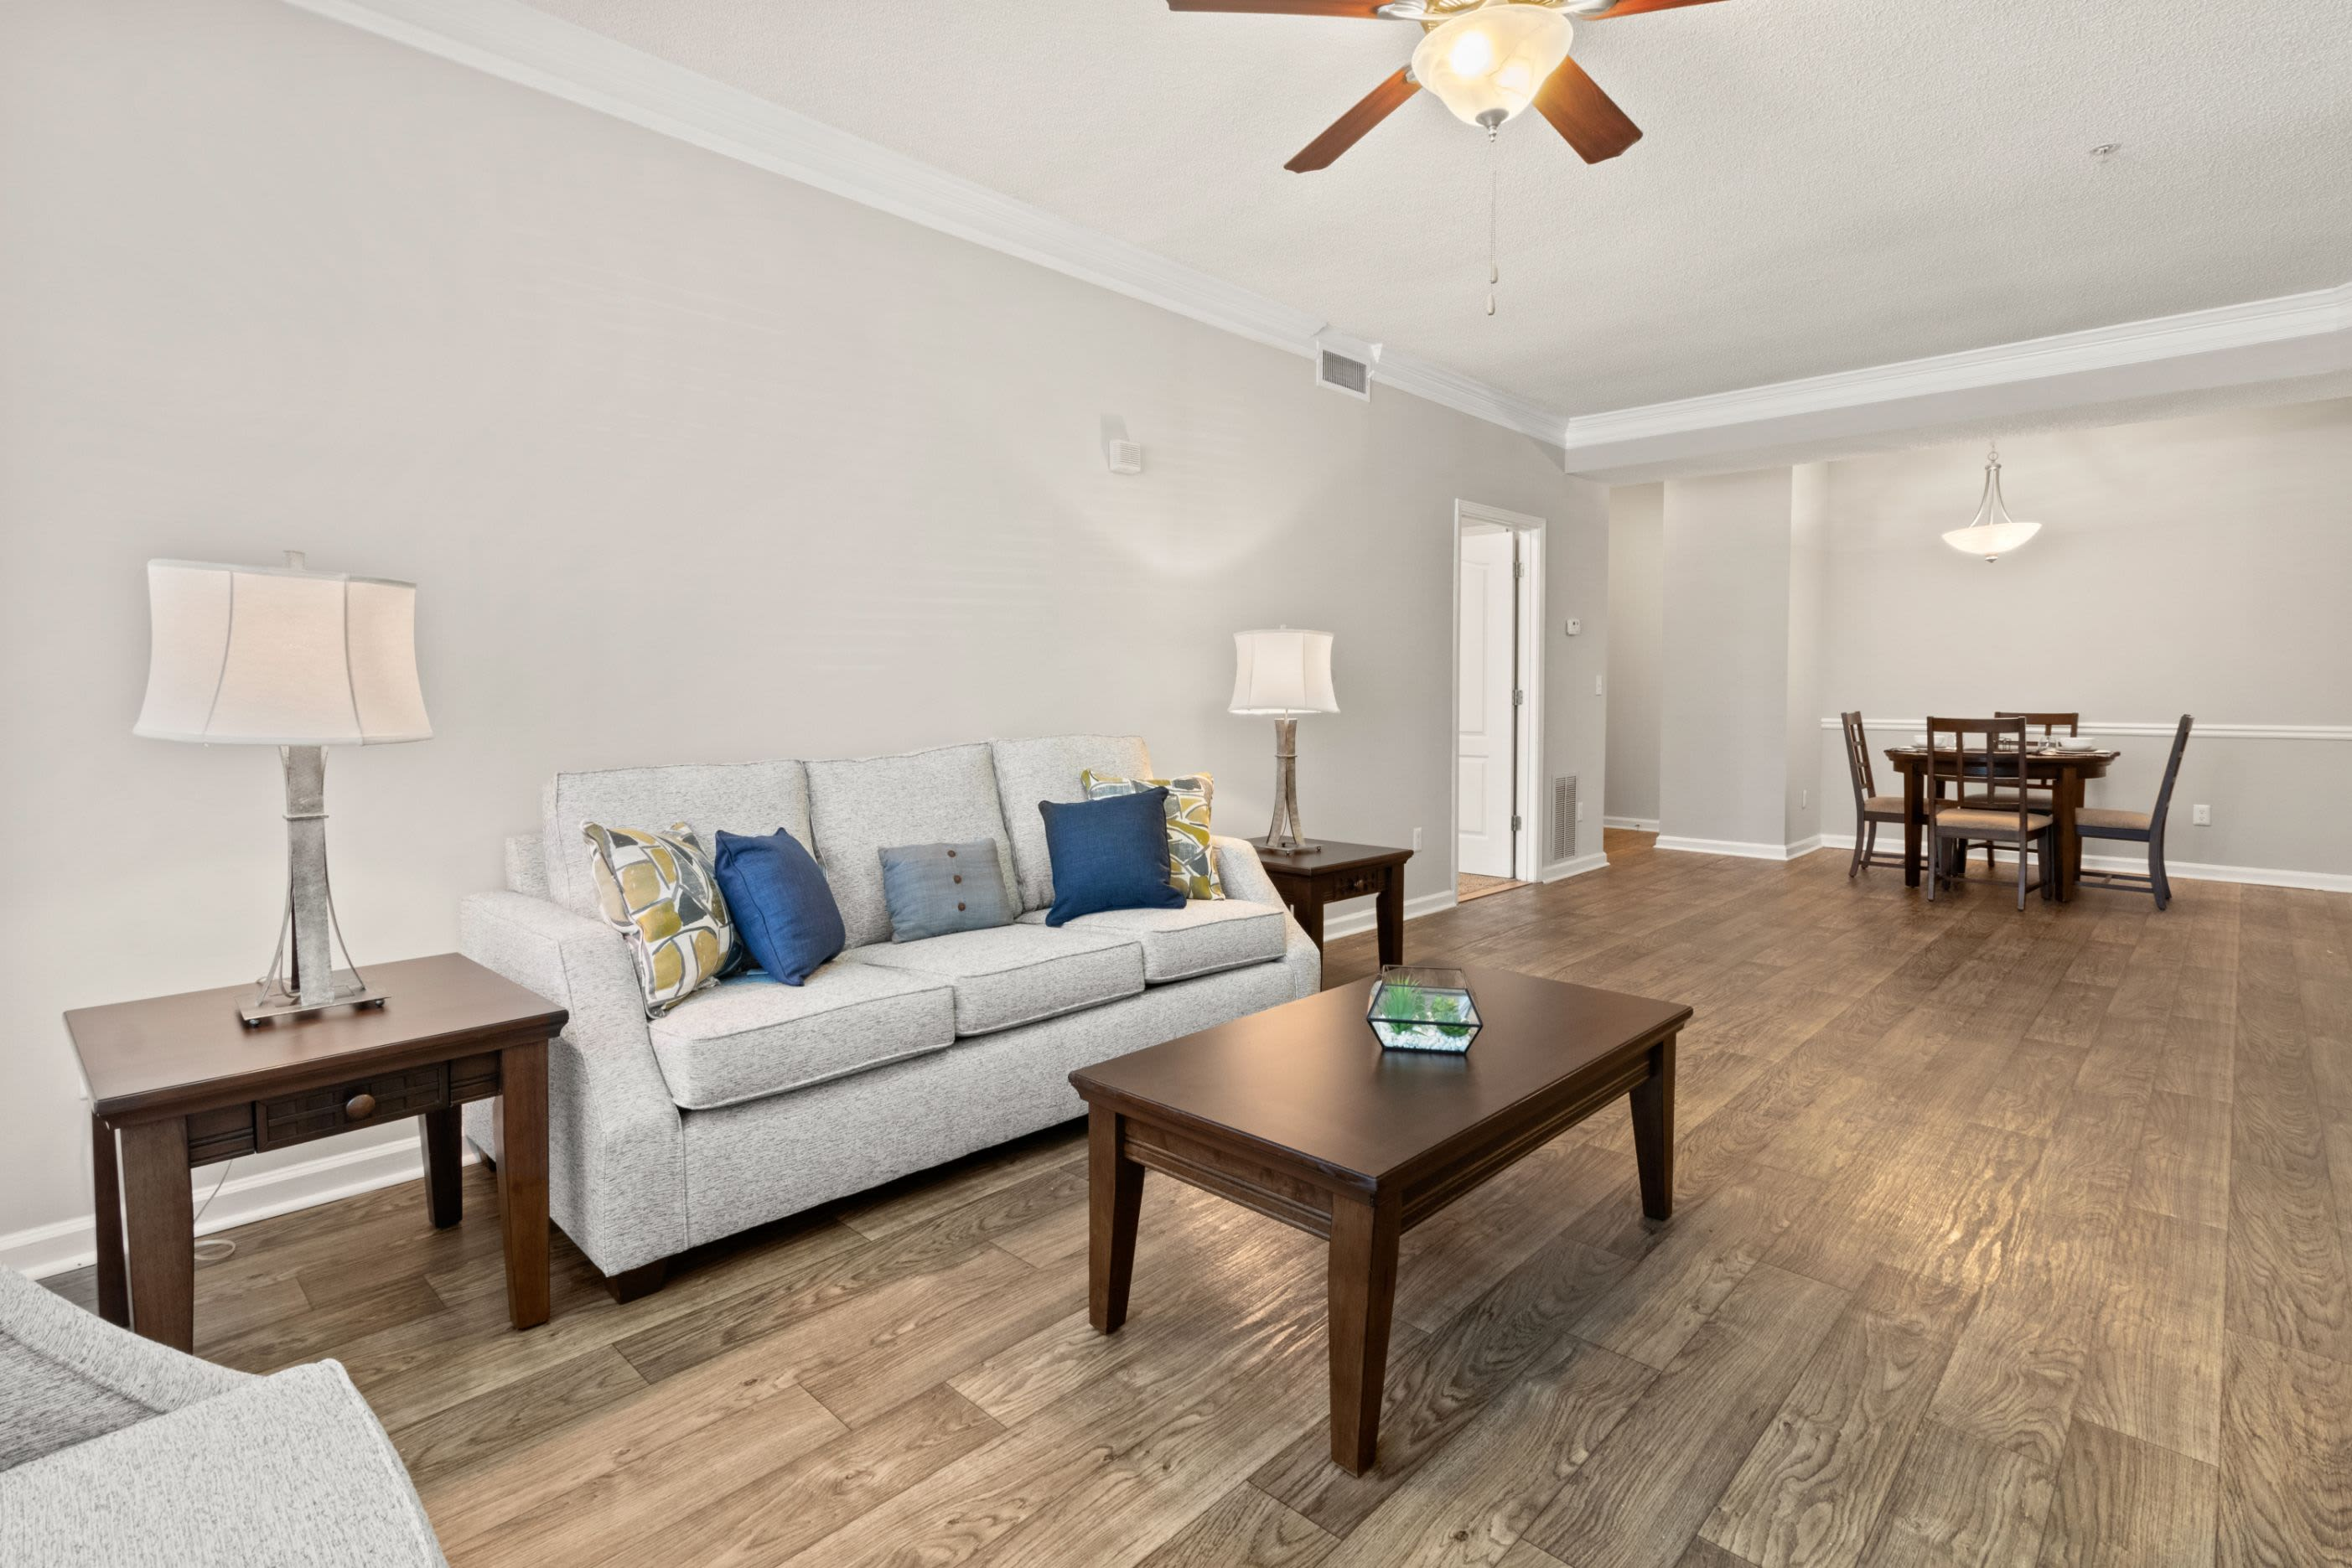 Spacious living room with a ceiling fan at Marquis Midtown West in Atlanta, Georgia